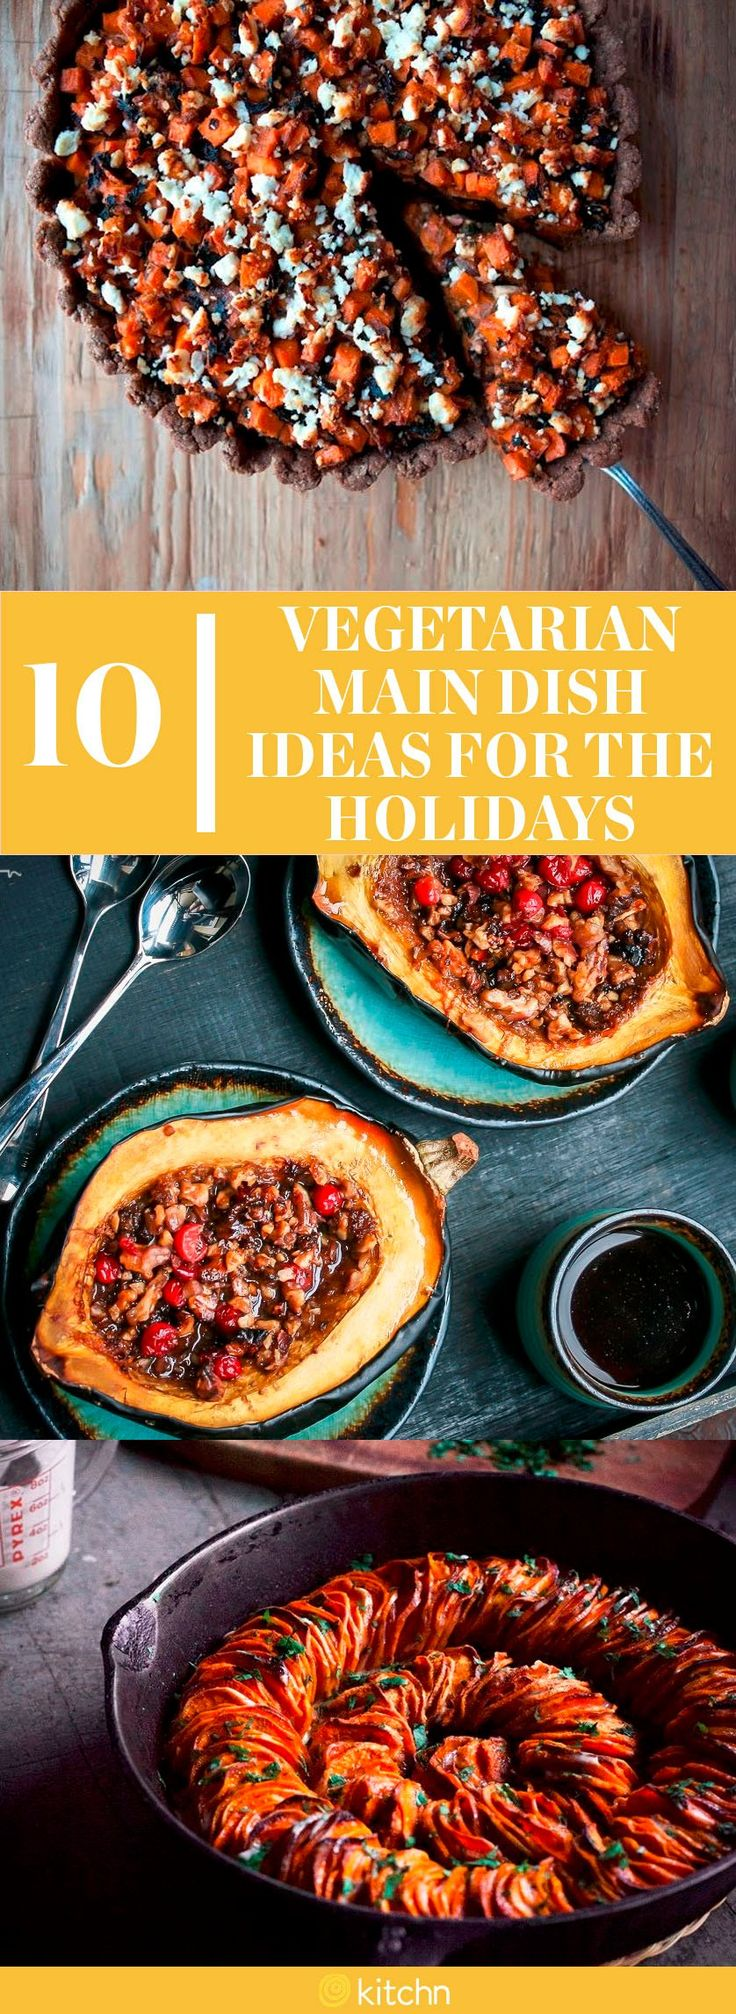 10 Vegetarian Main Dish Ideas and Recipes for Thanksgiving or Christmas. Who needs a turkey or a ham when you have veggies? These easy recipes are true crowd pleasers all fall and winter long.